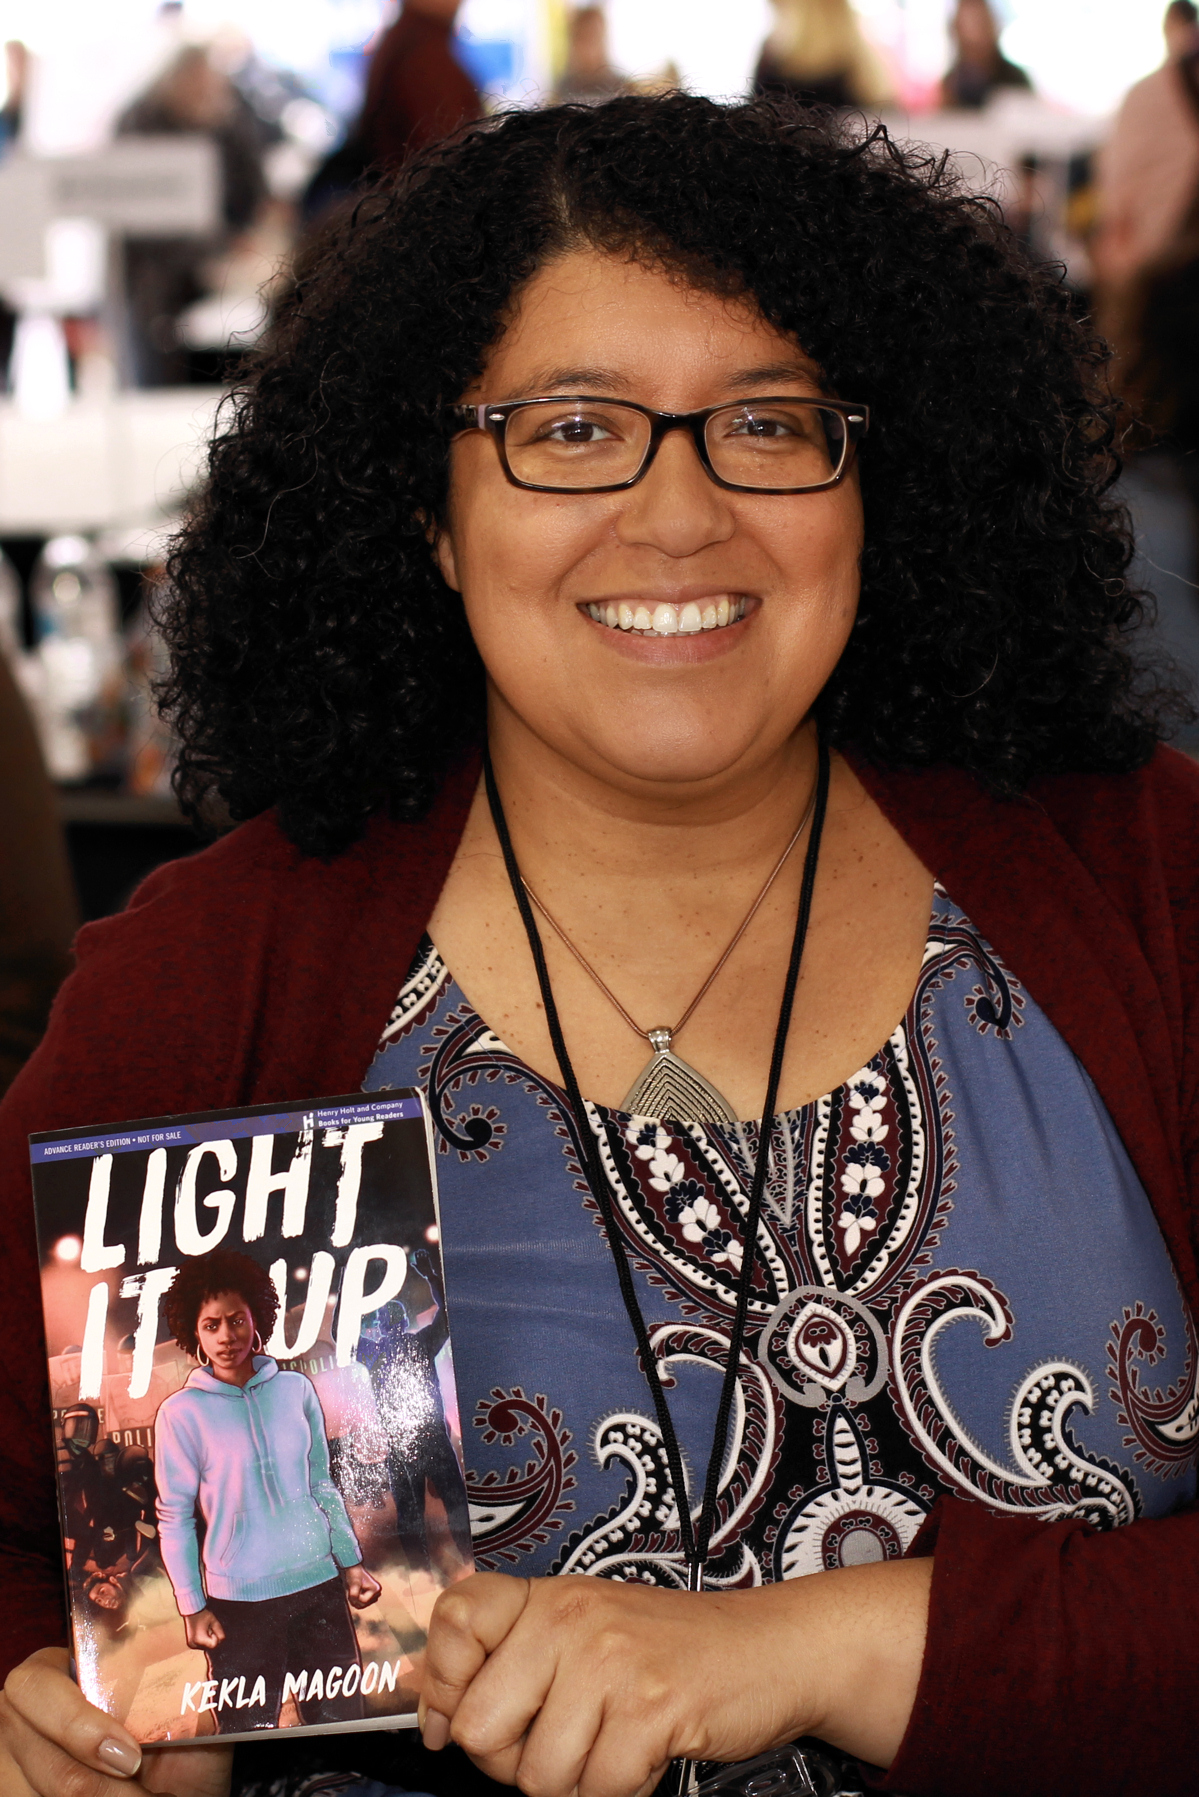 Magoon at the 2019 Texas Book Festival